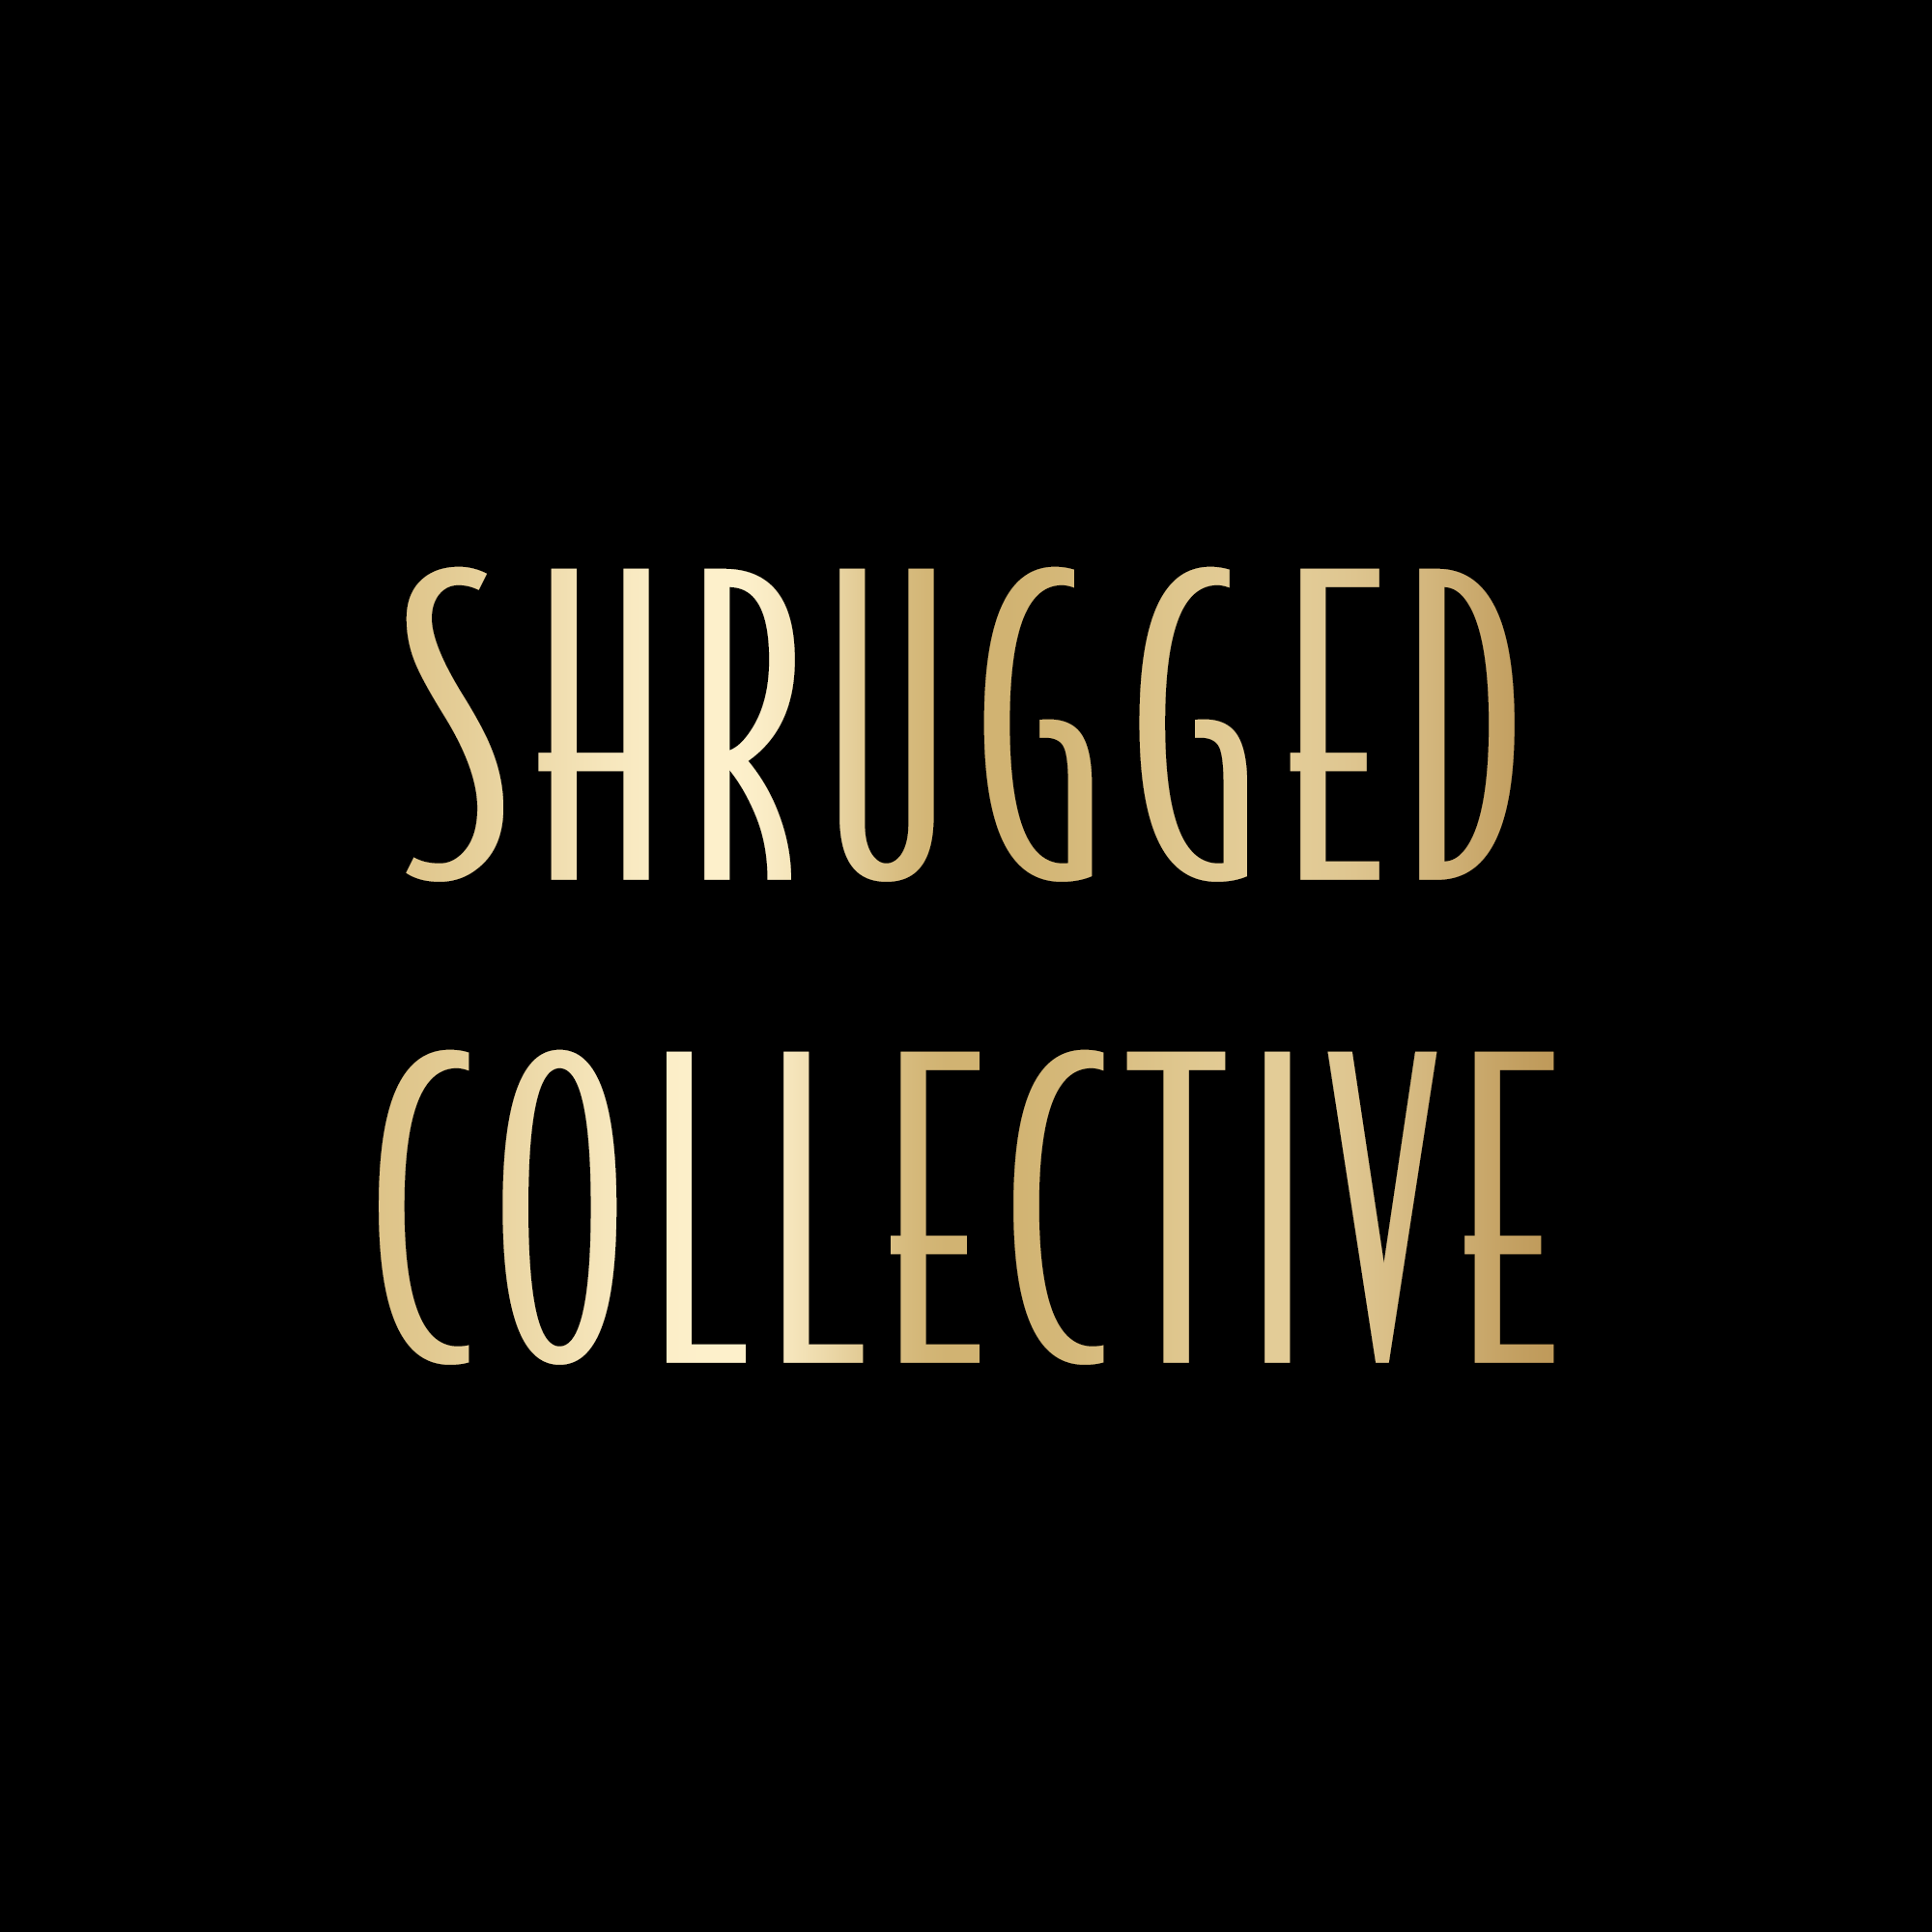 Shrugged Collective - A  network of fitness, health and performance shows that help people achieve their physical and mental health goals logo